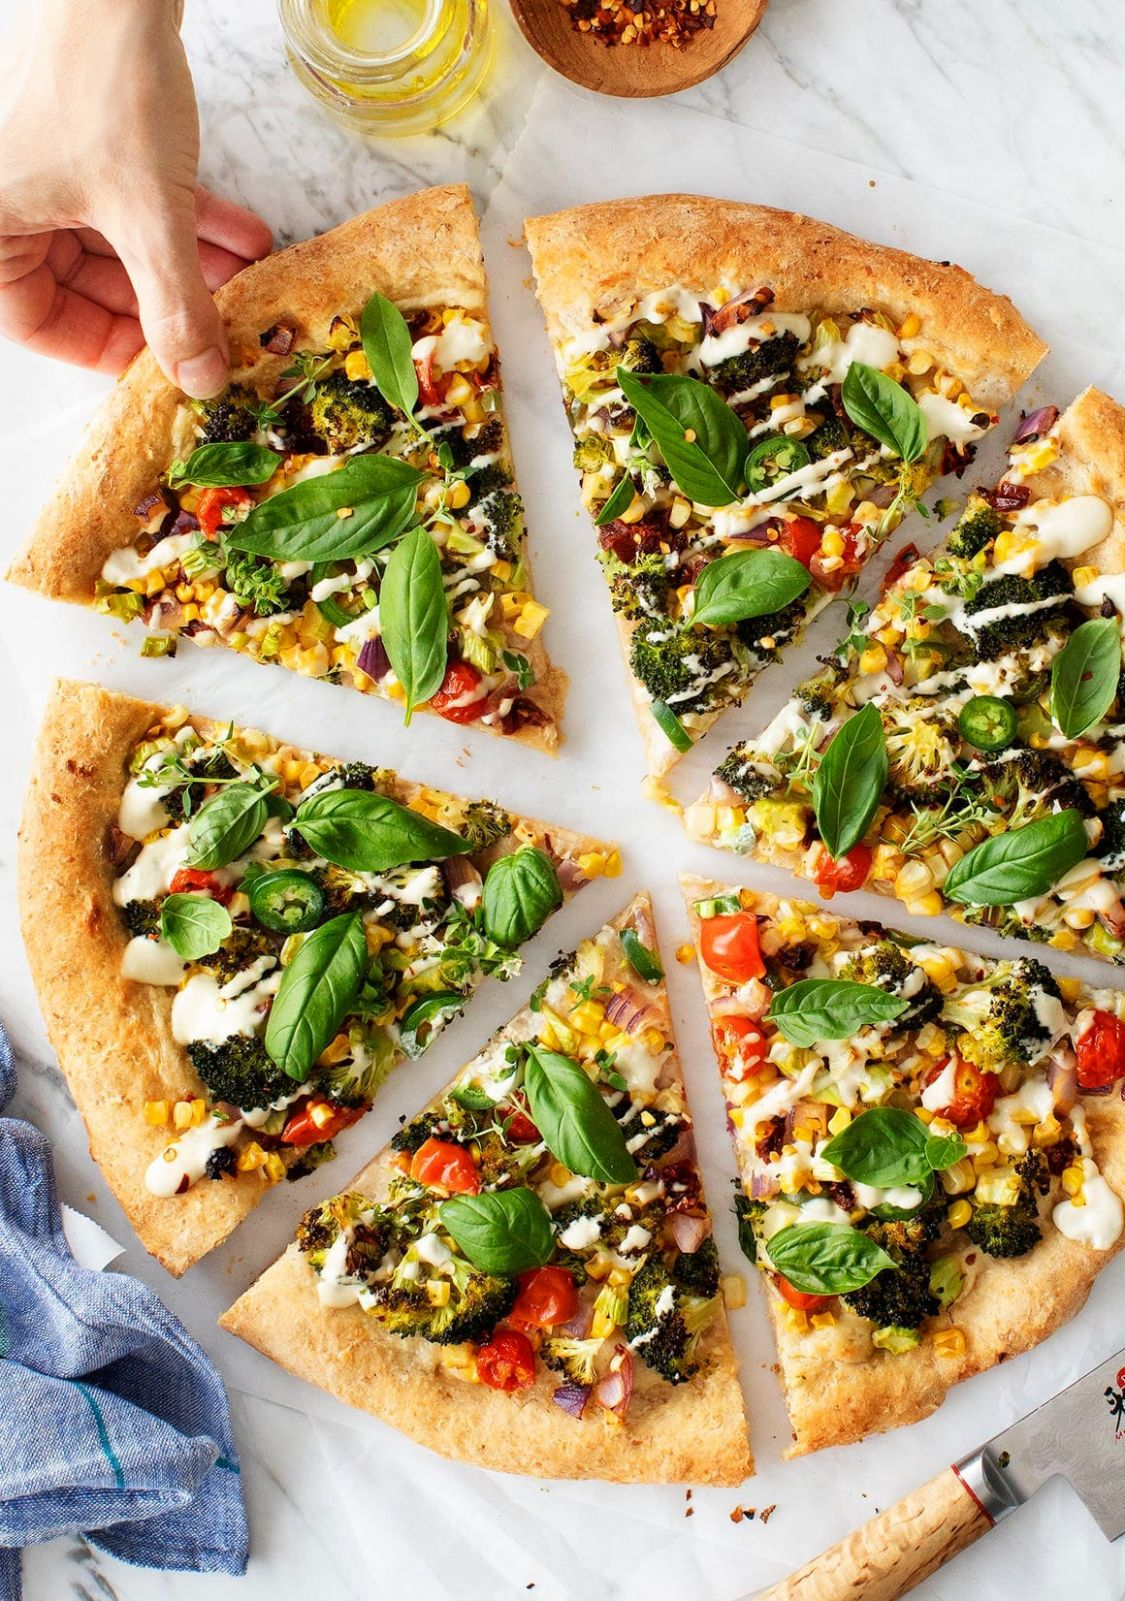 Best Vegan Pizza - Pizza Recipes Vegetarian